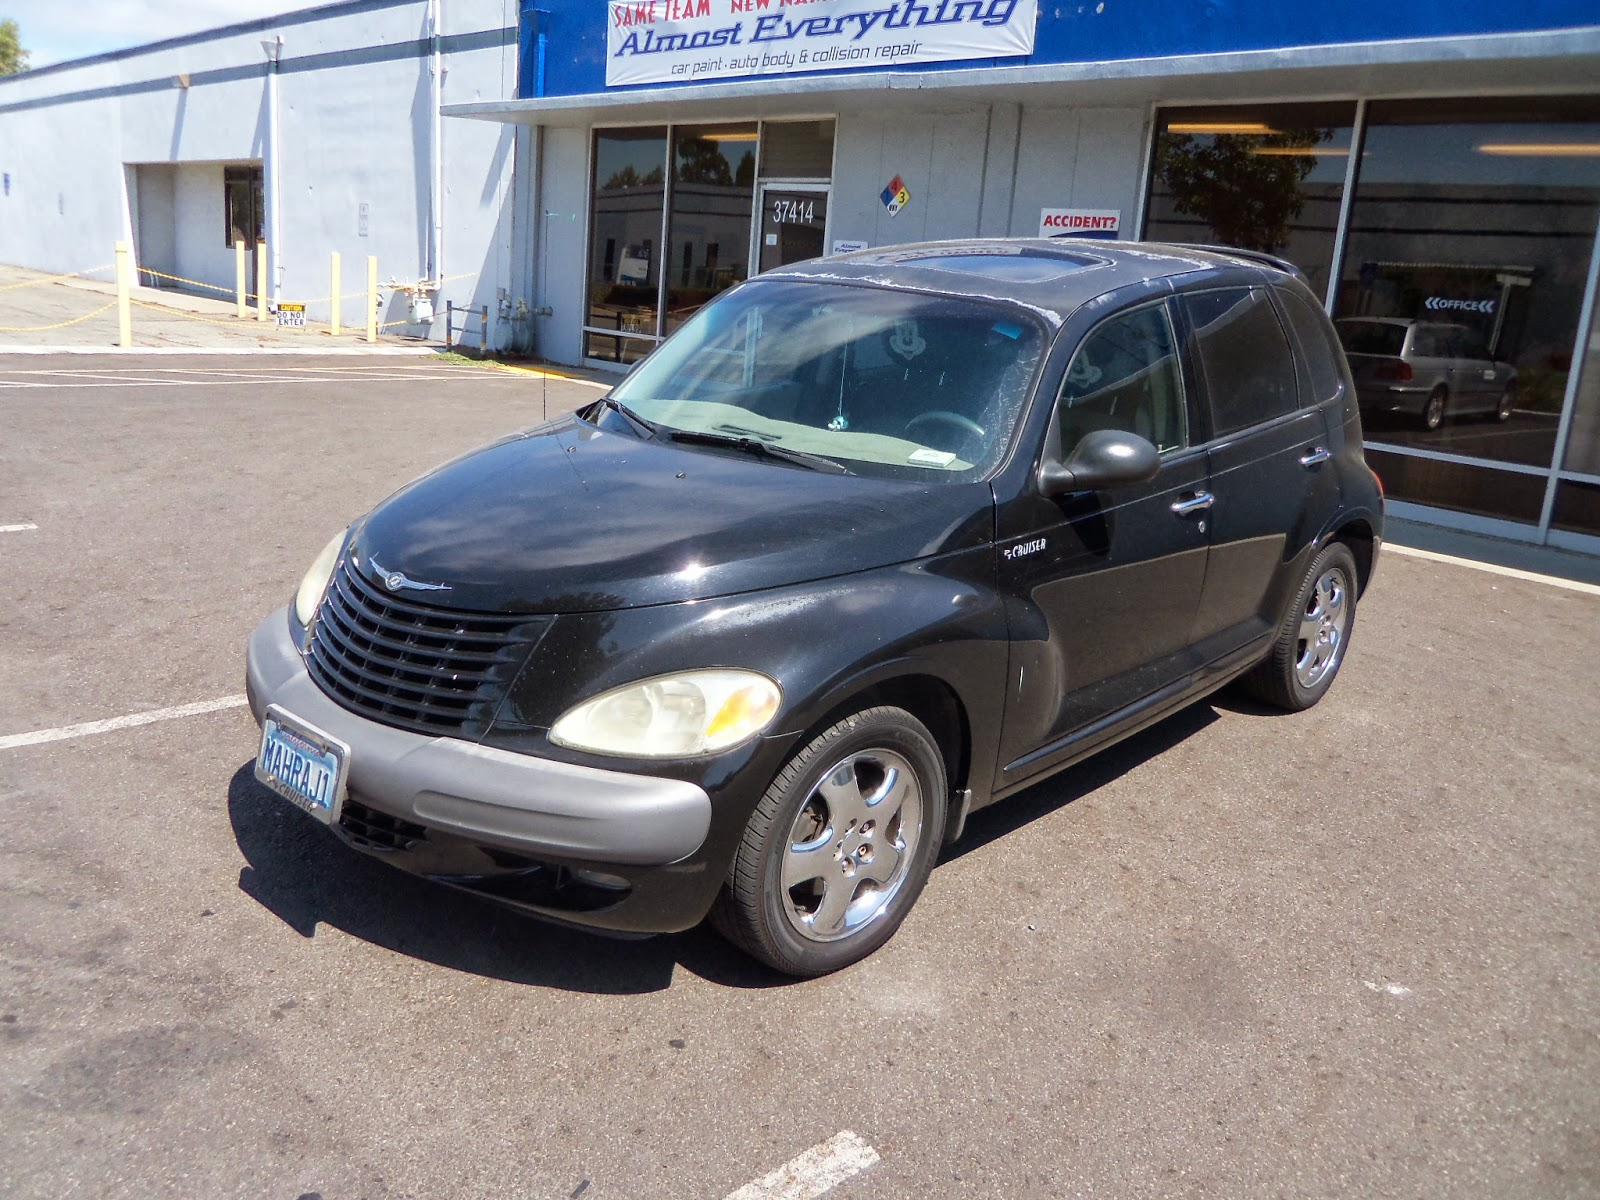 2001 chrysler pt cruiser paint job